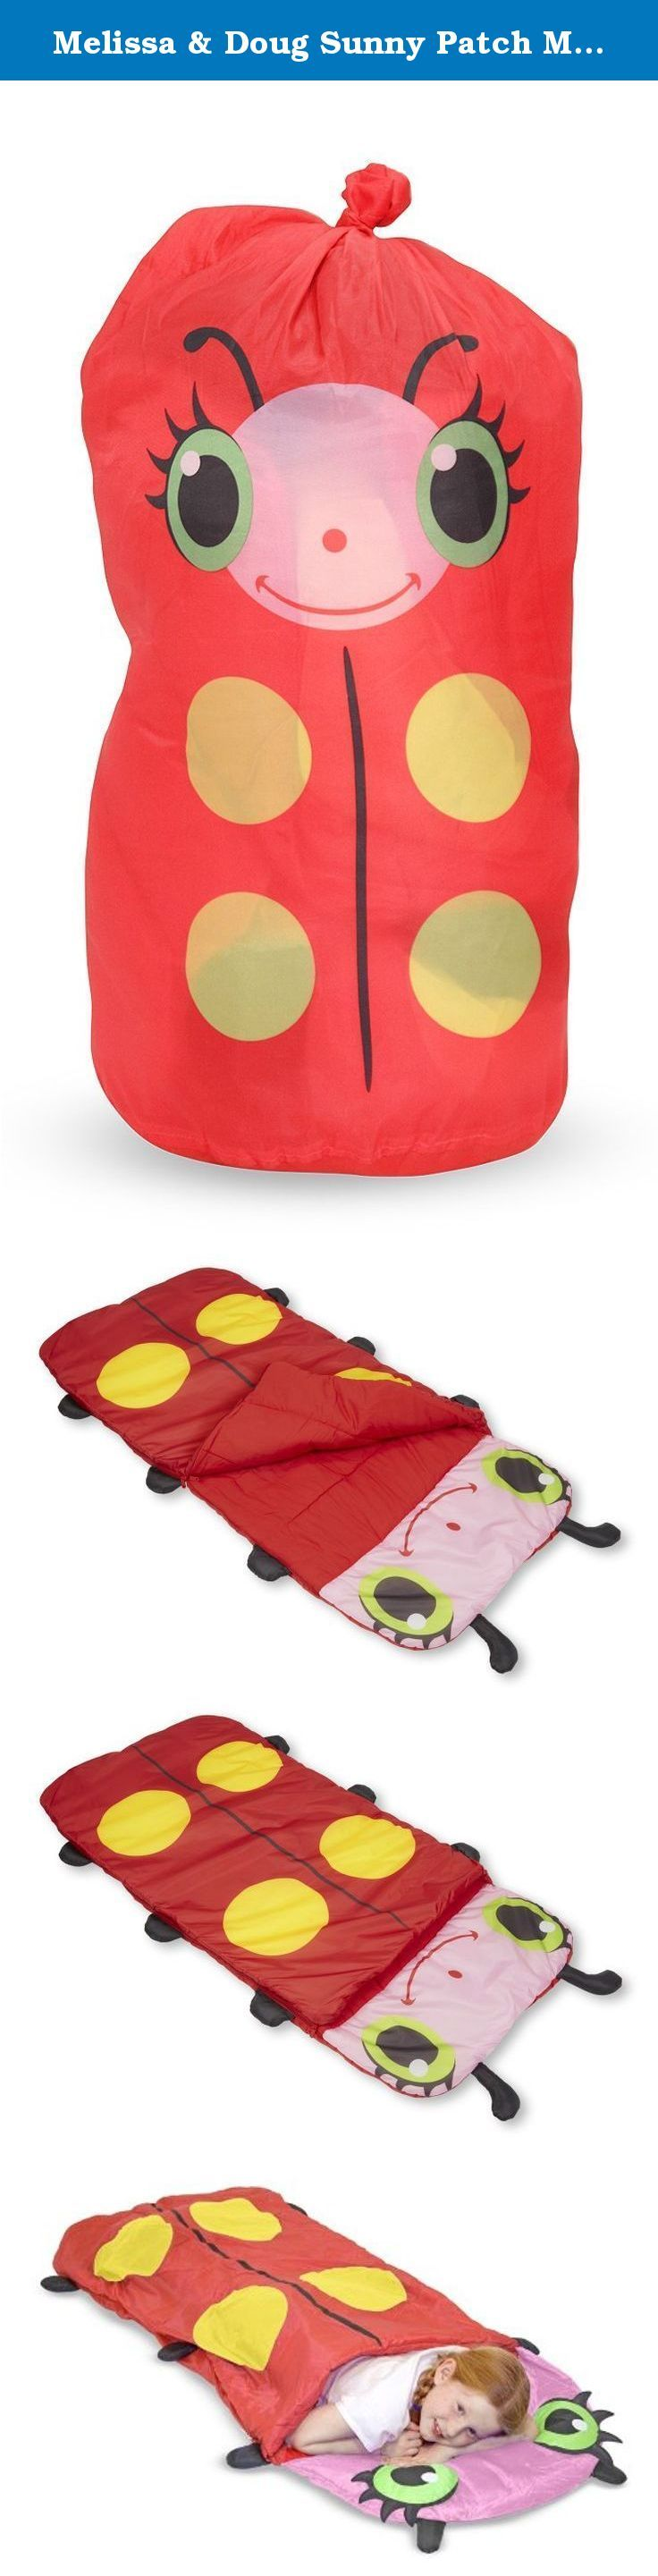 """Melissa & Doug Sunny Patch Mollie Ladybug Sleeping Bag (6 feet long). """"Snug as a bug"""" takes on a whole new meaning when your child is curled up in this cozy ladybug sleeping bag. Over five feet long, this bag is stuffed with comfy polyester and is the perfect place for a night filled with sweet dreams!."""